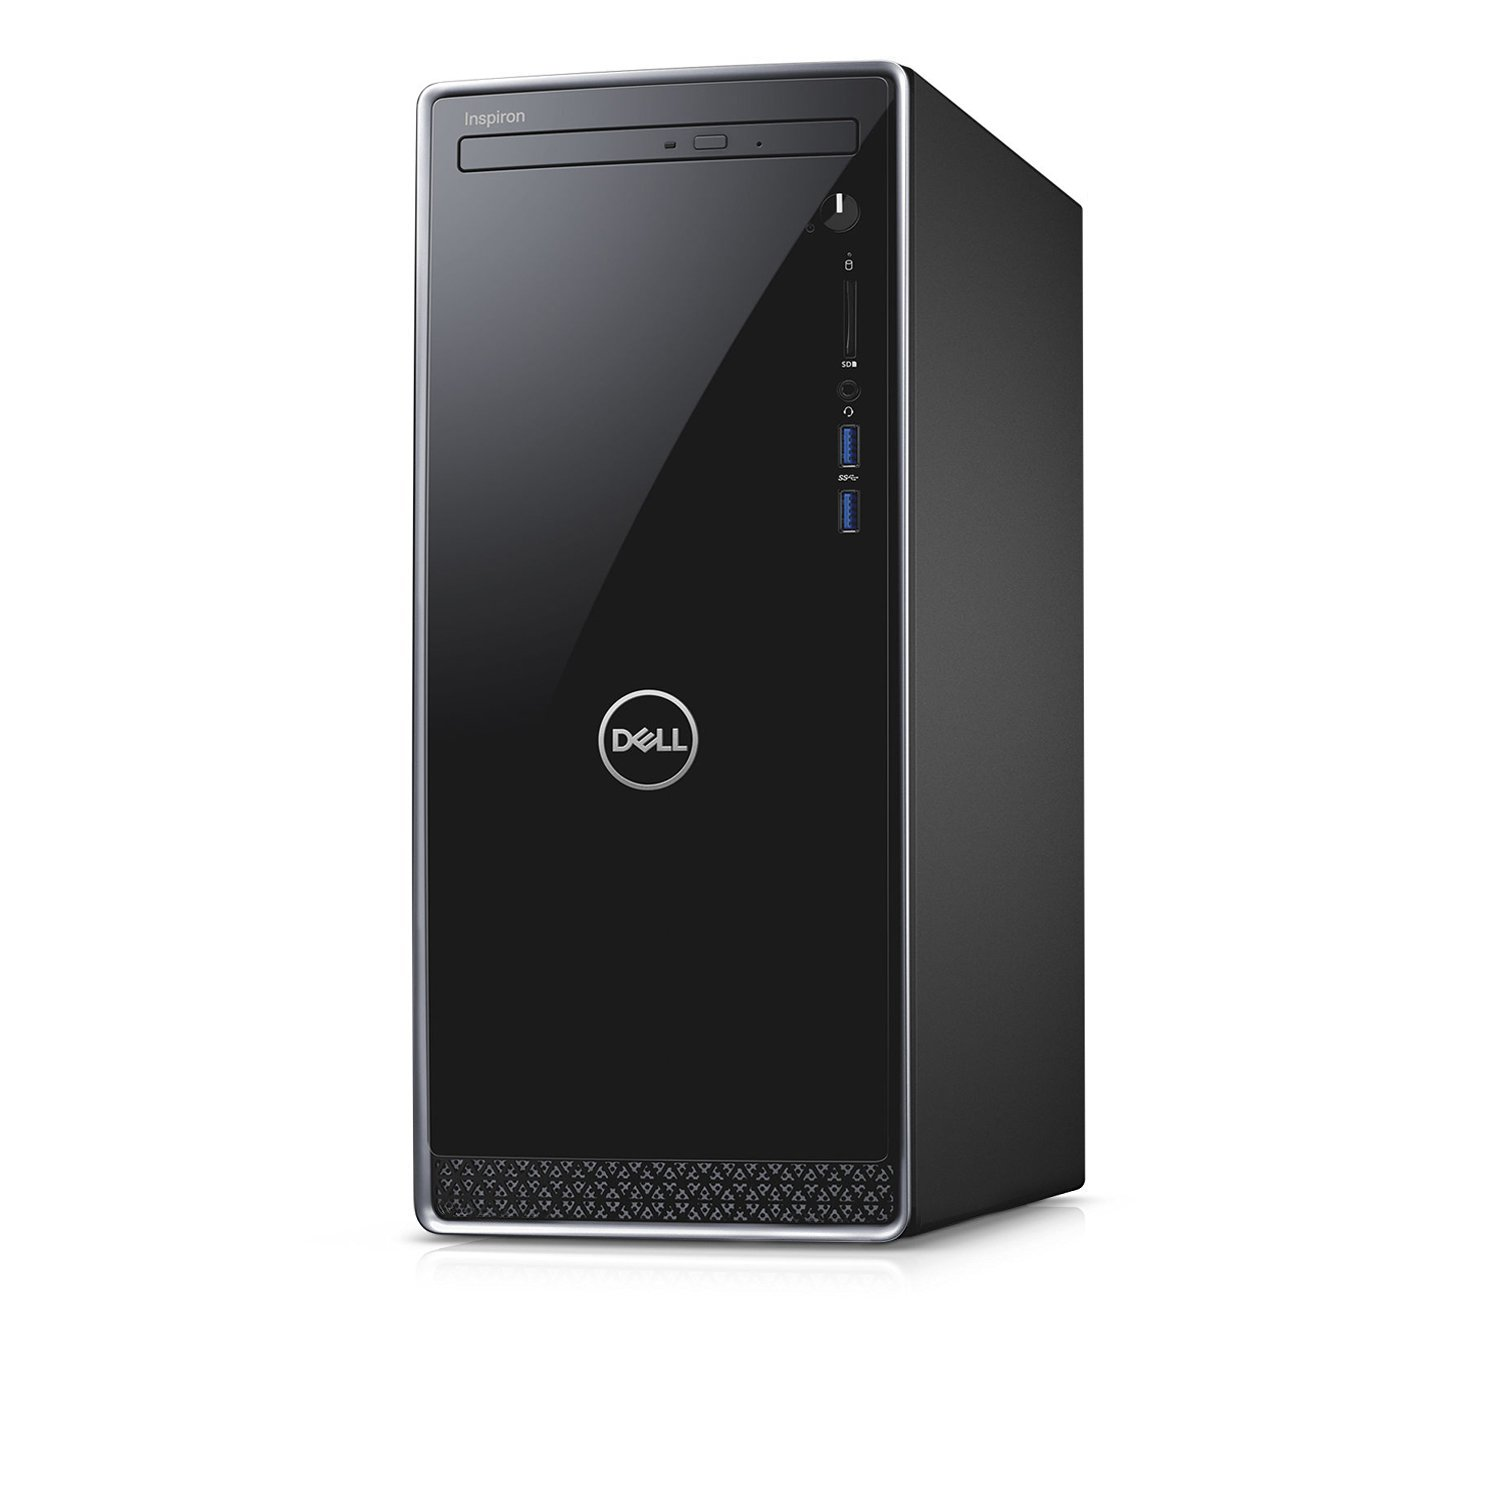 Dell Inspiron i3670 Powerful 2018 Newest Tower Desktop with Latest 8th Generation Intel Core i7-8700 6-Core Processor and Windows 10 Professional (64-bit) ...